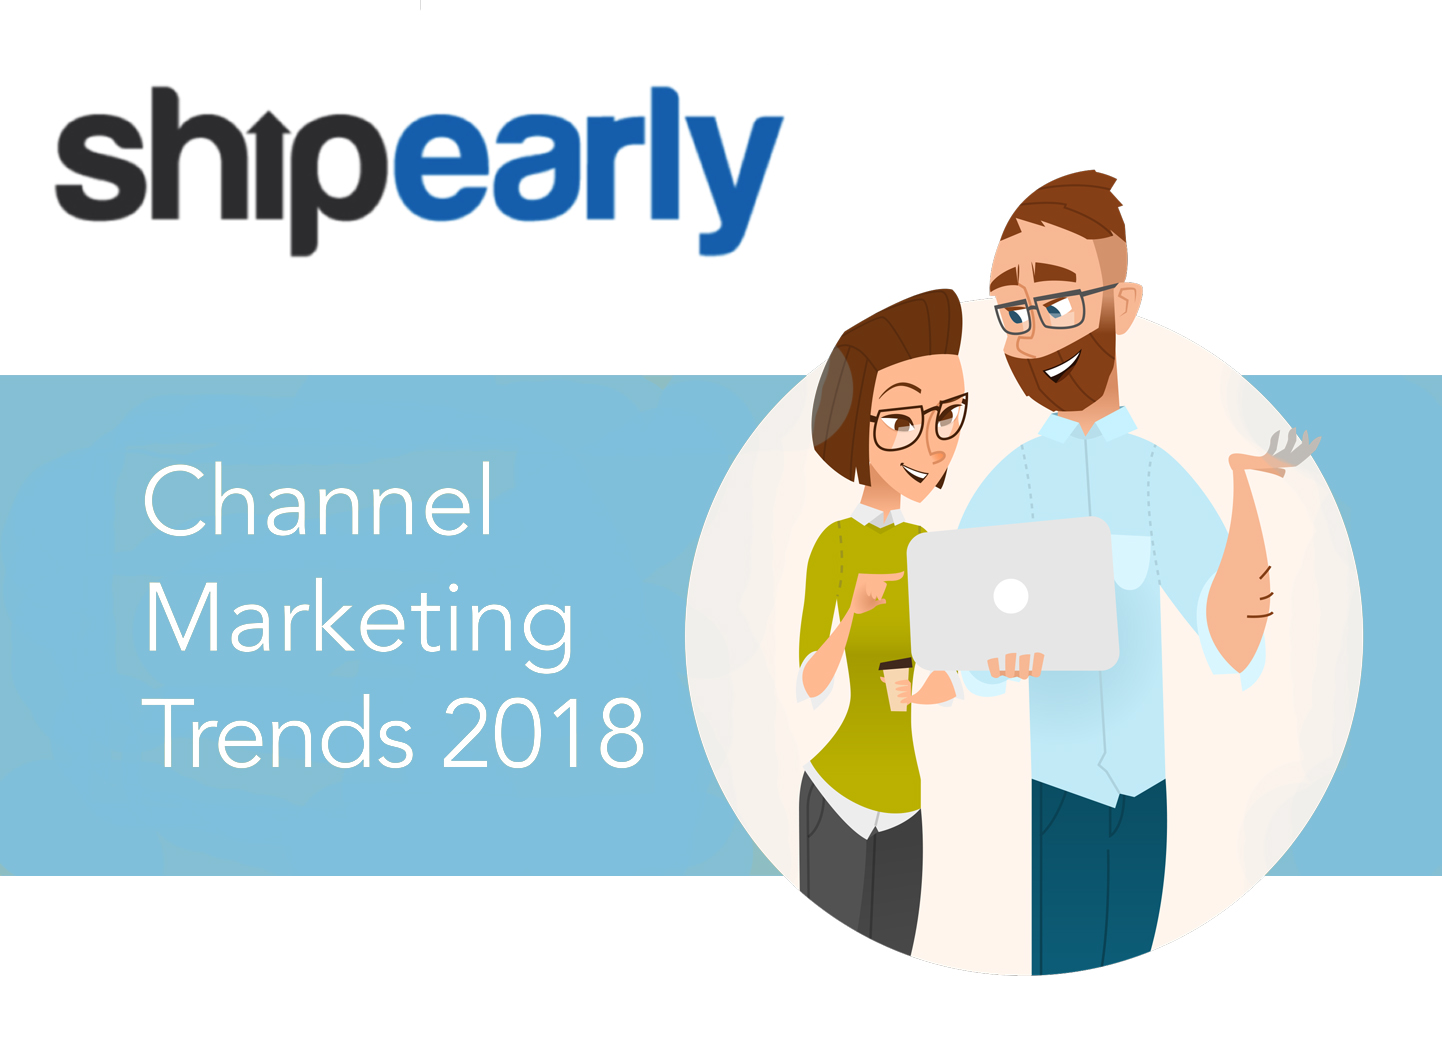 2018 Channel Marketing Trends Infographic